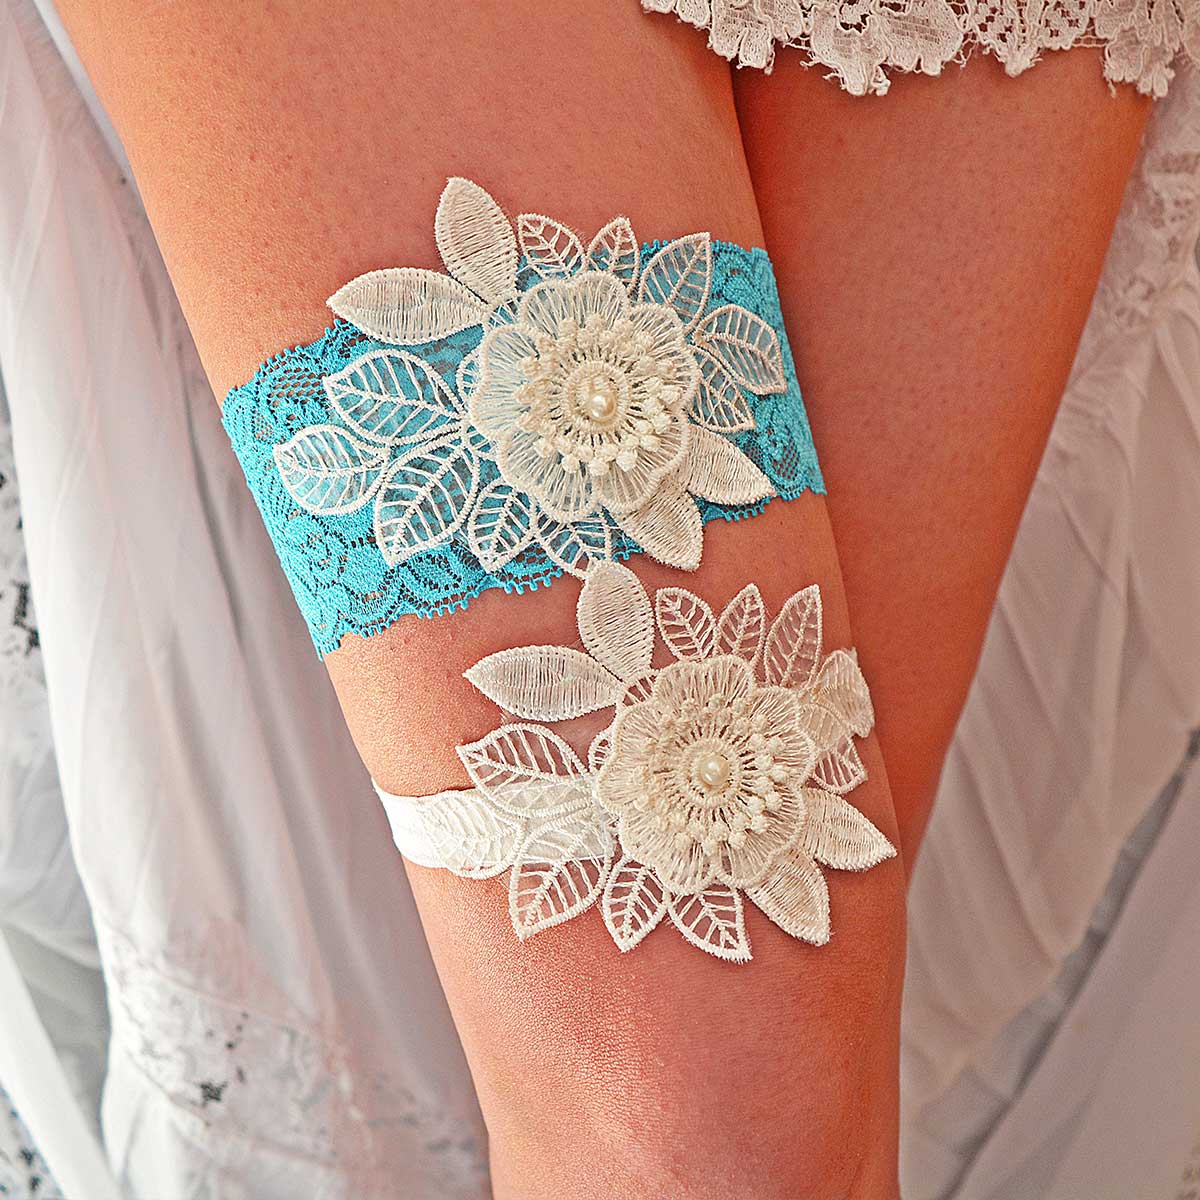 Turquoise Garter With 3D White Flower Applique & Pearls - Wedding Garter - SuzannaM Designs